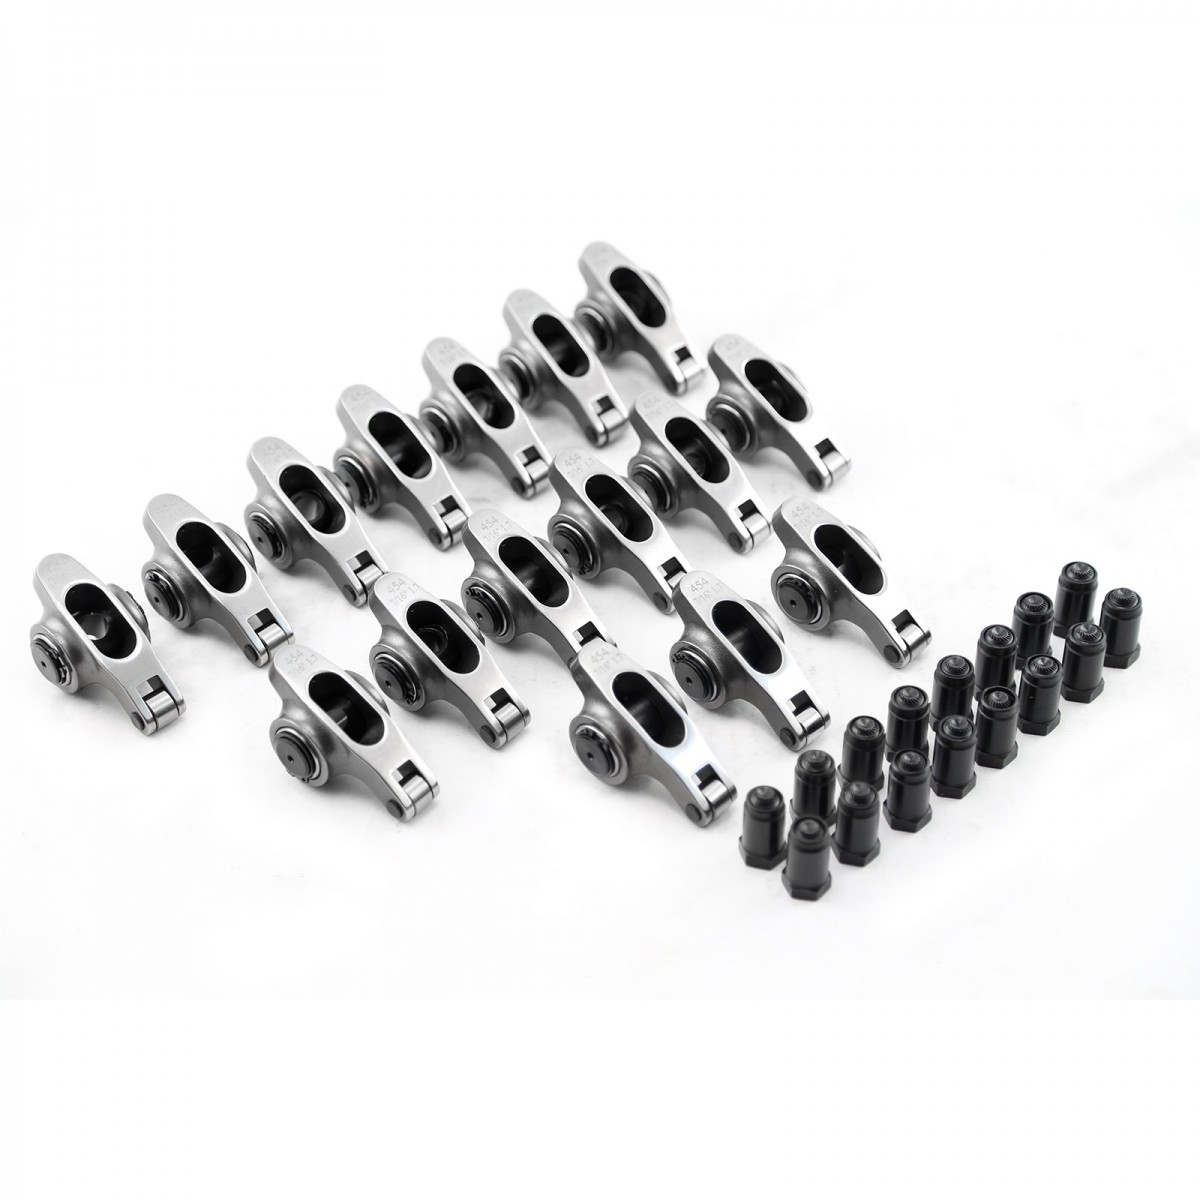 """Chevy SBC 283 327 350 400 1.5 3/8"""" Stainless Steel Roller"""